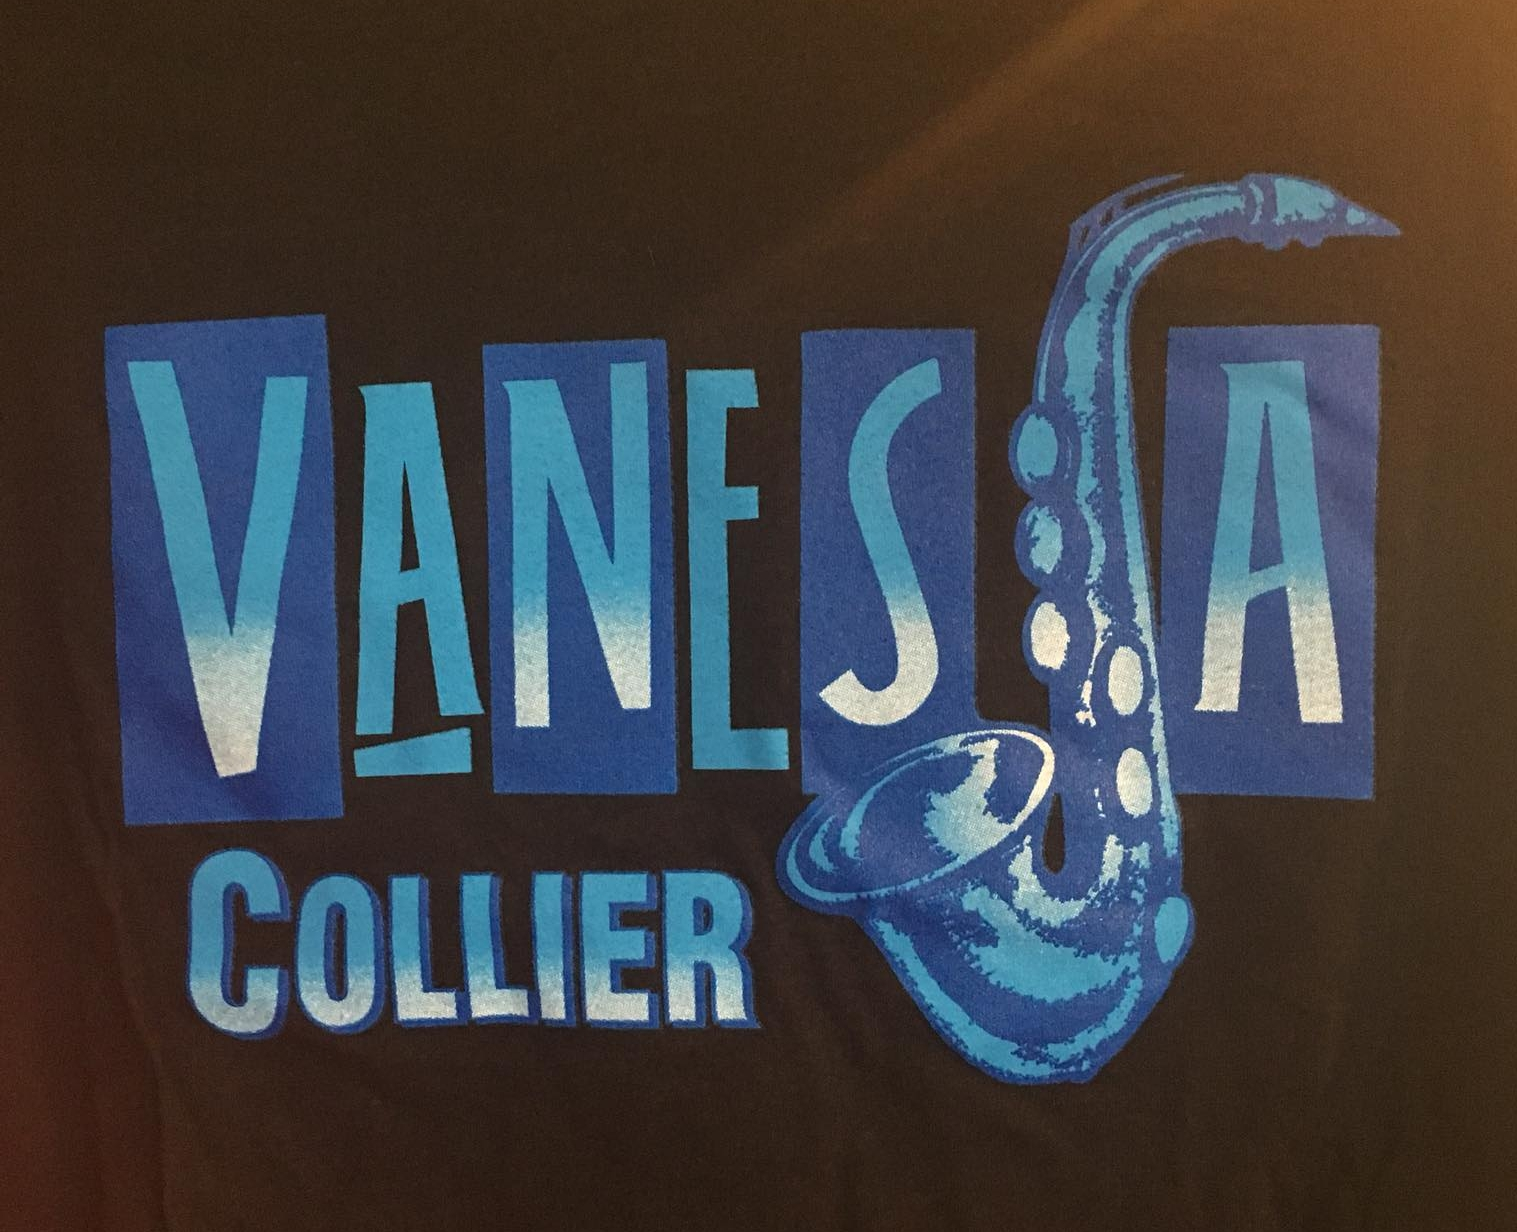 *NEW* OFFICIAL VANESSA COLLIER T-SHIRT DESIGN BY THE INCREDIBLE MIKE MCCARTY!! This t-shirt is black with two shades of blue in the design and will be shipped out soon! Read up on Mike's album artwork for the   Atlanta Rhythm Section, Jerry Lee Lewis, Isaac Hayes, James Brown, Waylon Jennings, Willie Nelson, Patti Smith, KC and the Sunshine Band, Billy Joe Royal, Albert Coleman and The Atlanta Pops Orchestra, Bobby Brown/Whitney Houston, etc.    here !